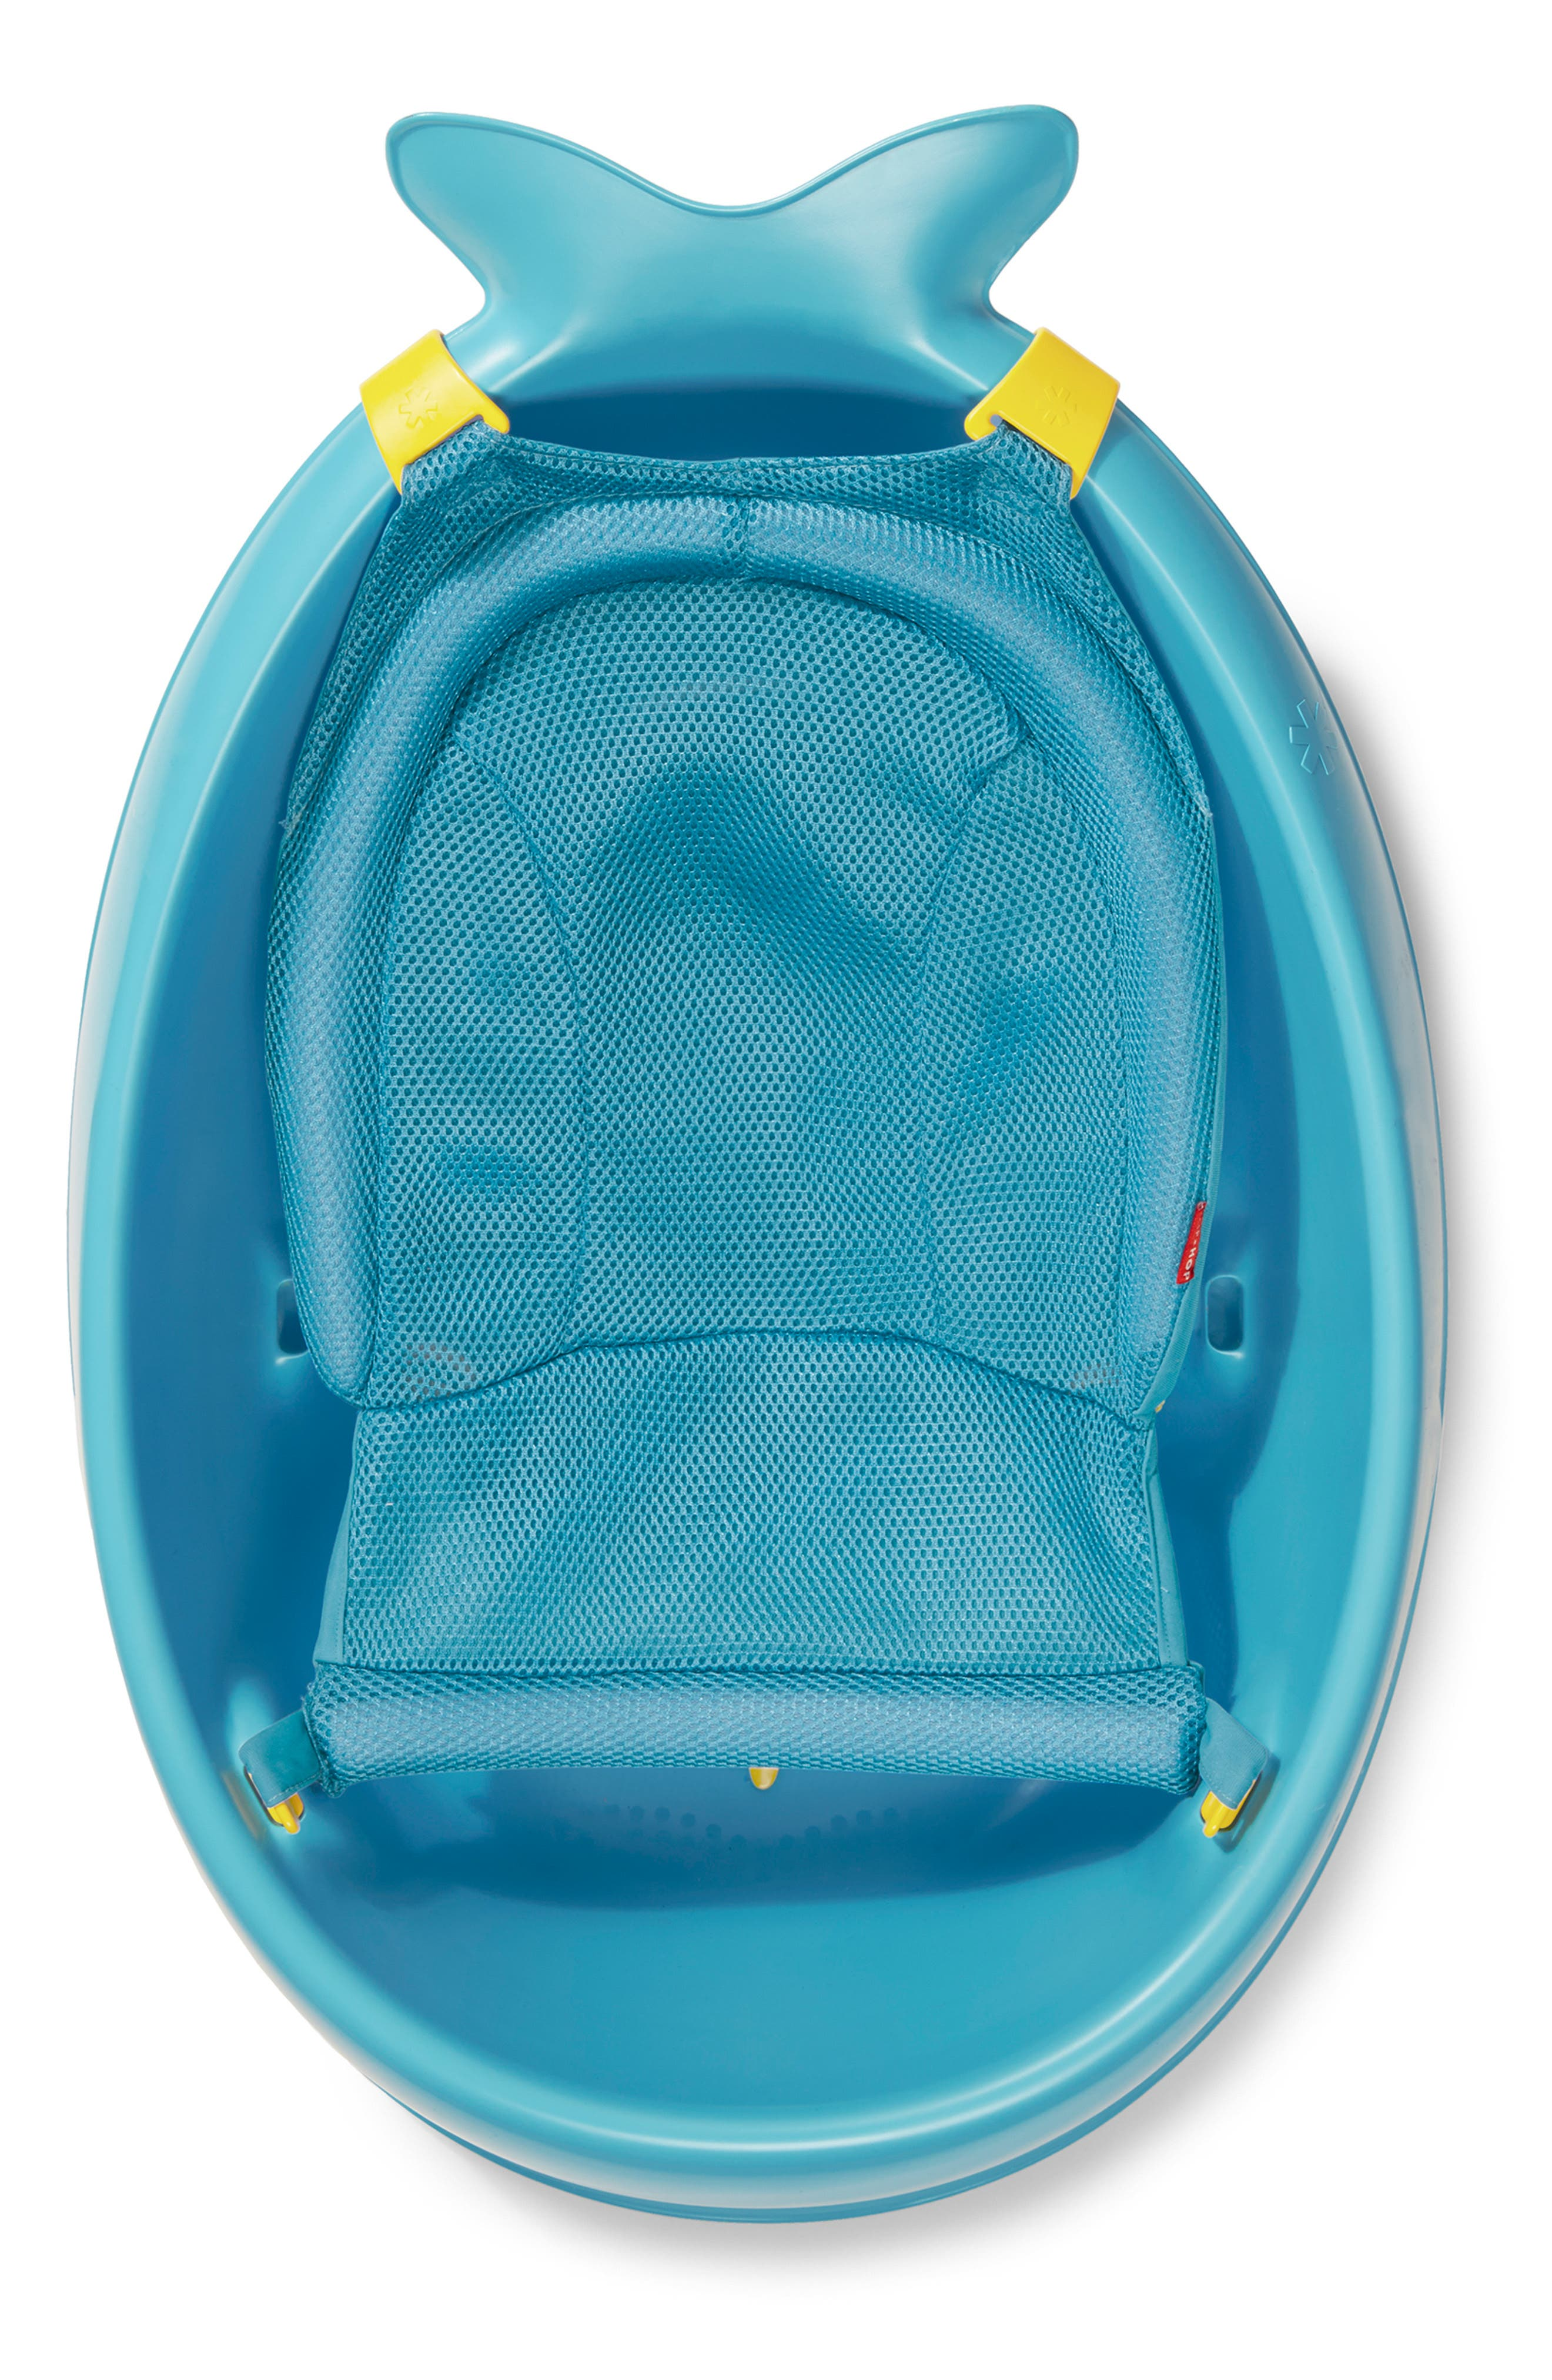 'Moby Smart Sling' Three-Stage Tub,                             Alternate thumbnail 5, color,                             BLUE